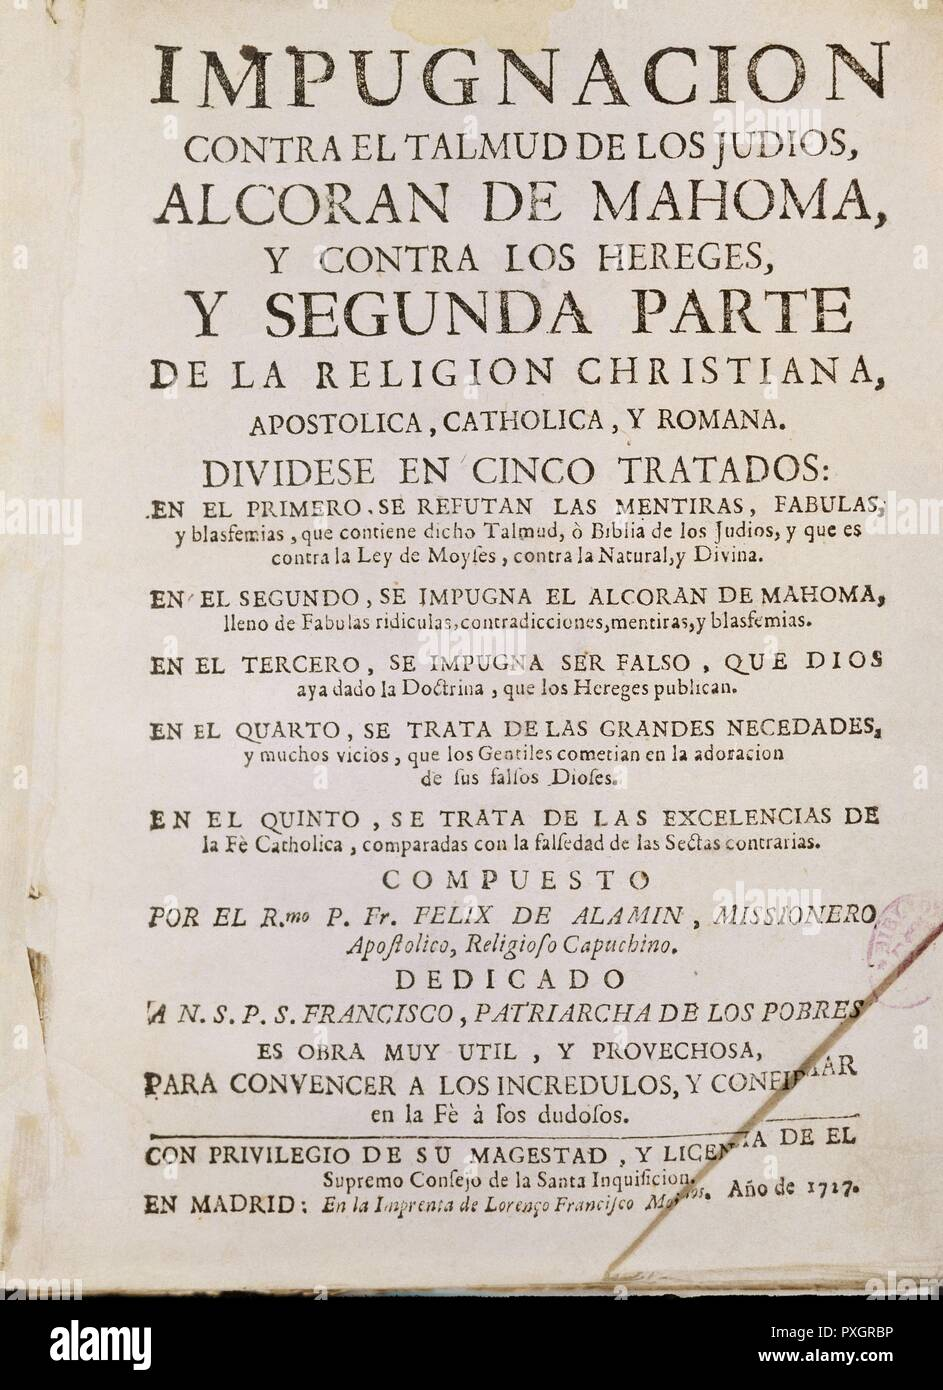 IMPUGNACION CONTRA EL TALMUD DE LOS JUDIOS-1717. Author: ALAMIN. Location: BIBLIOTECA NACIONAL-COLECCION. MADRID. SPAIN. - Stock Image